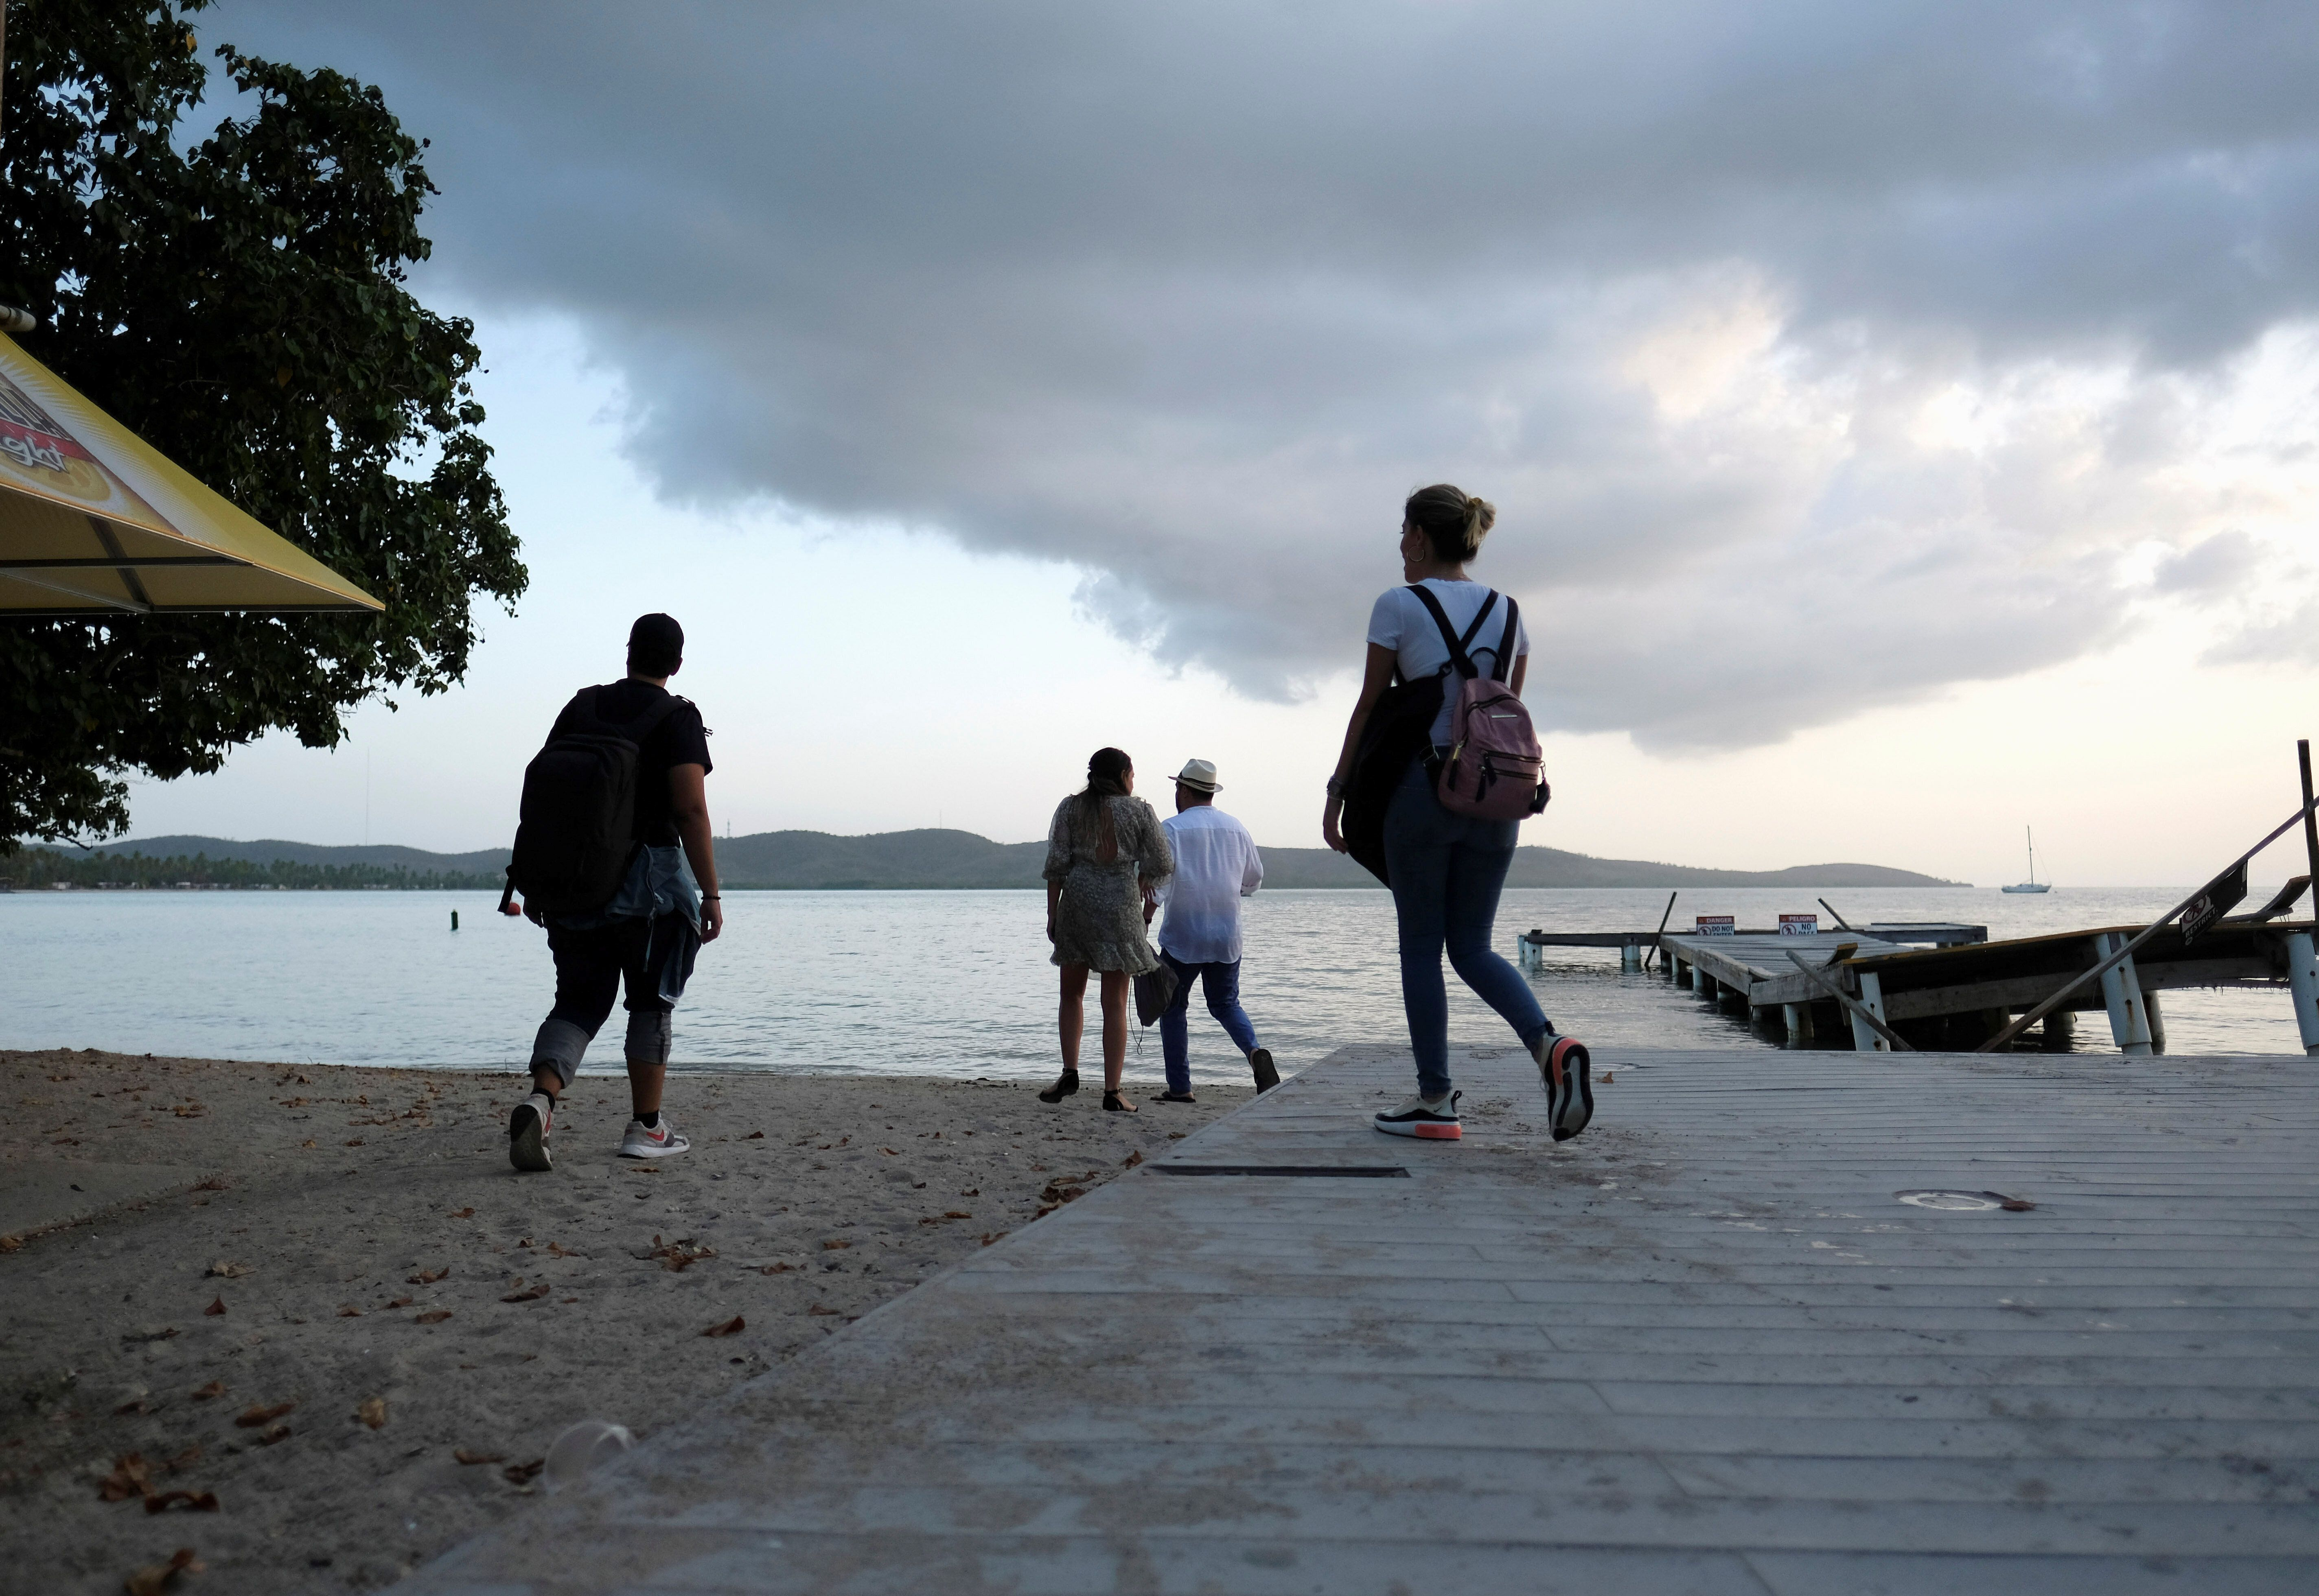 A group of people walk on the beach in the tourist zone of Boquerón as Tropical Storm Dorian approaches on Aug. 26, 20